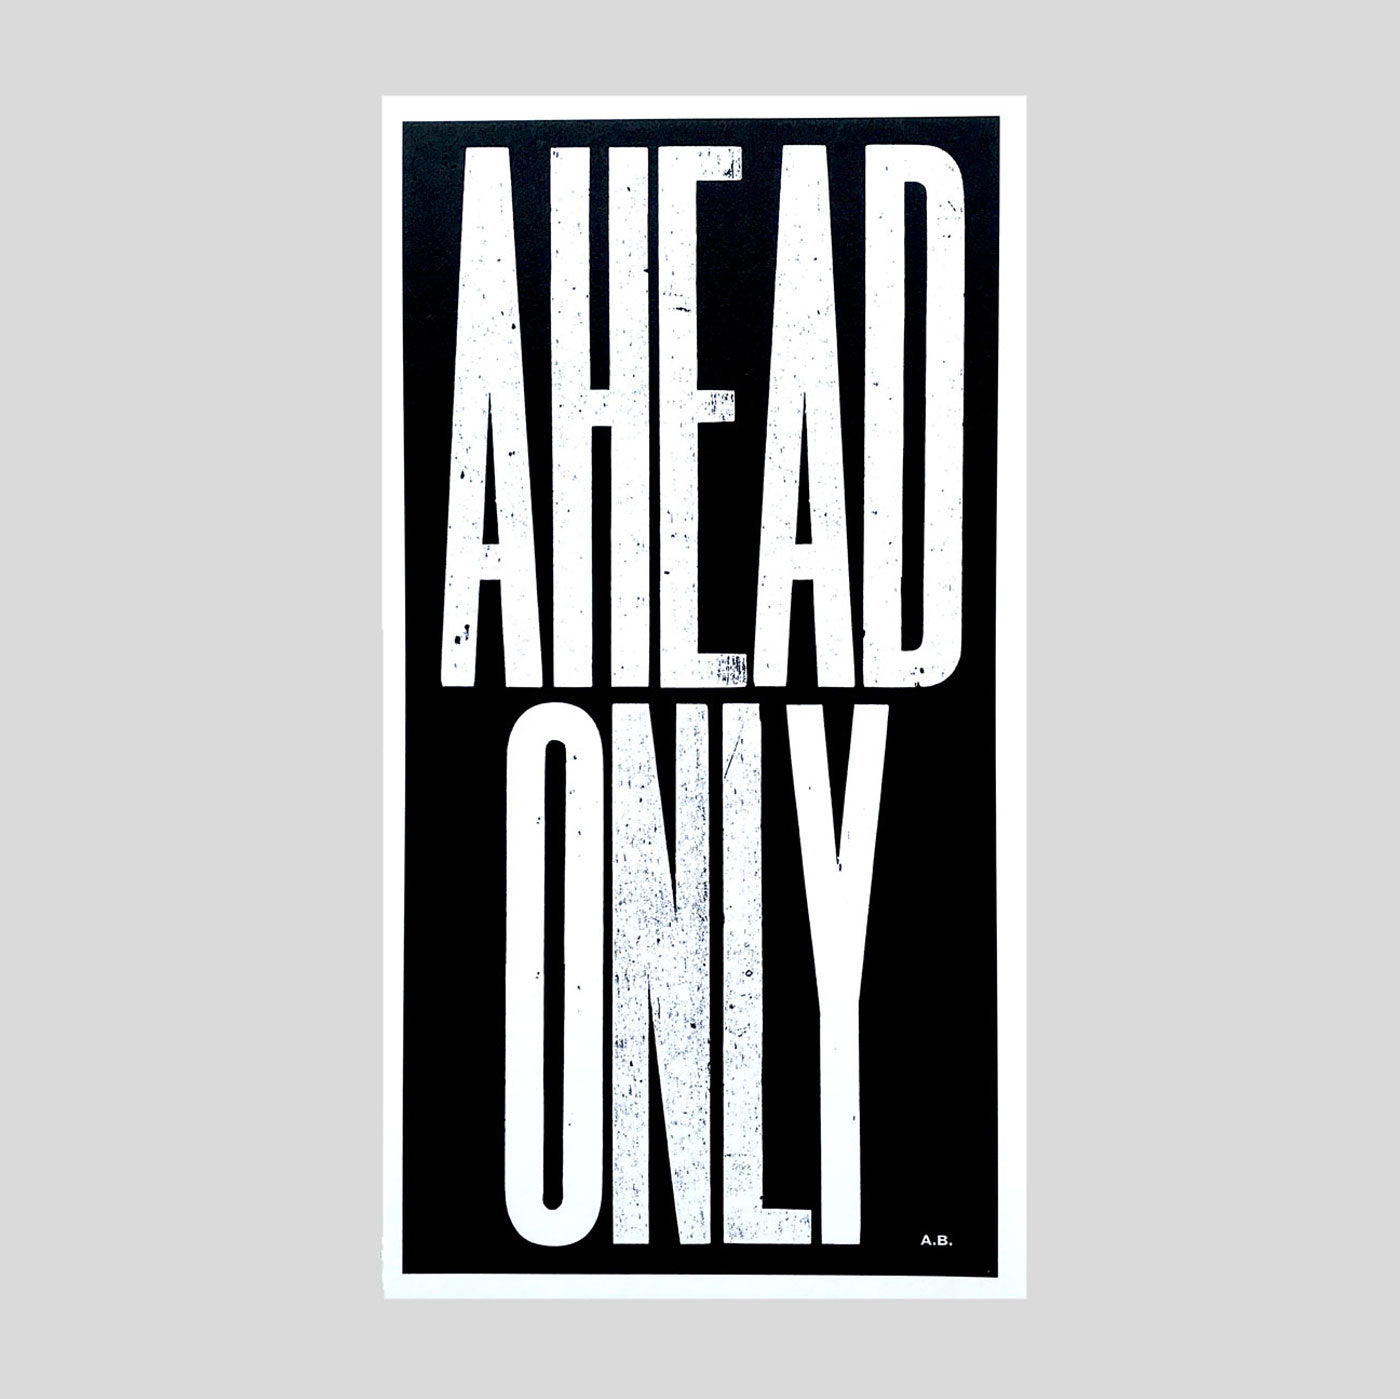 Hup Hup Hup by Anthony Burrill - Colours May Vary